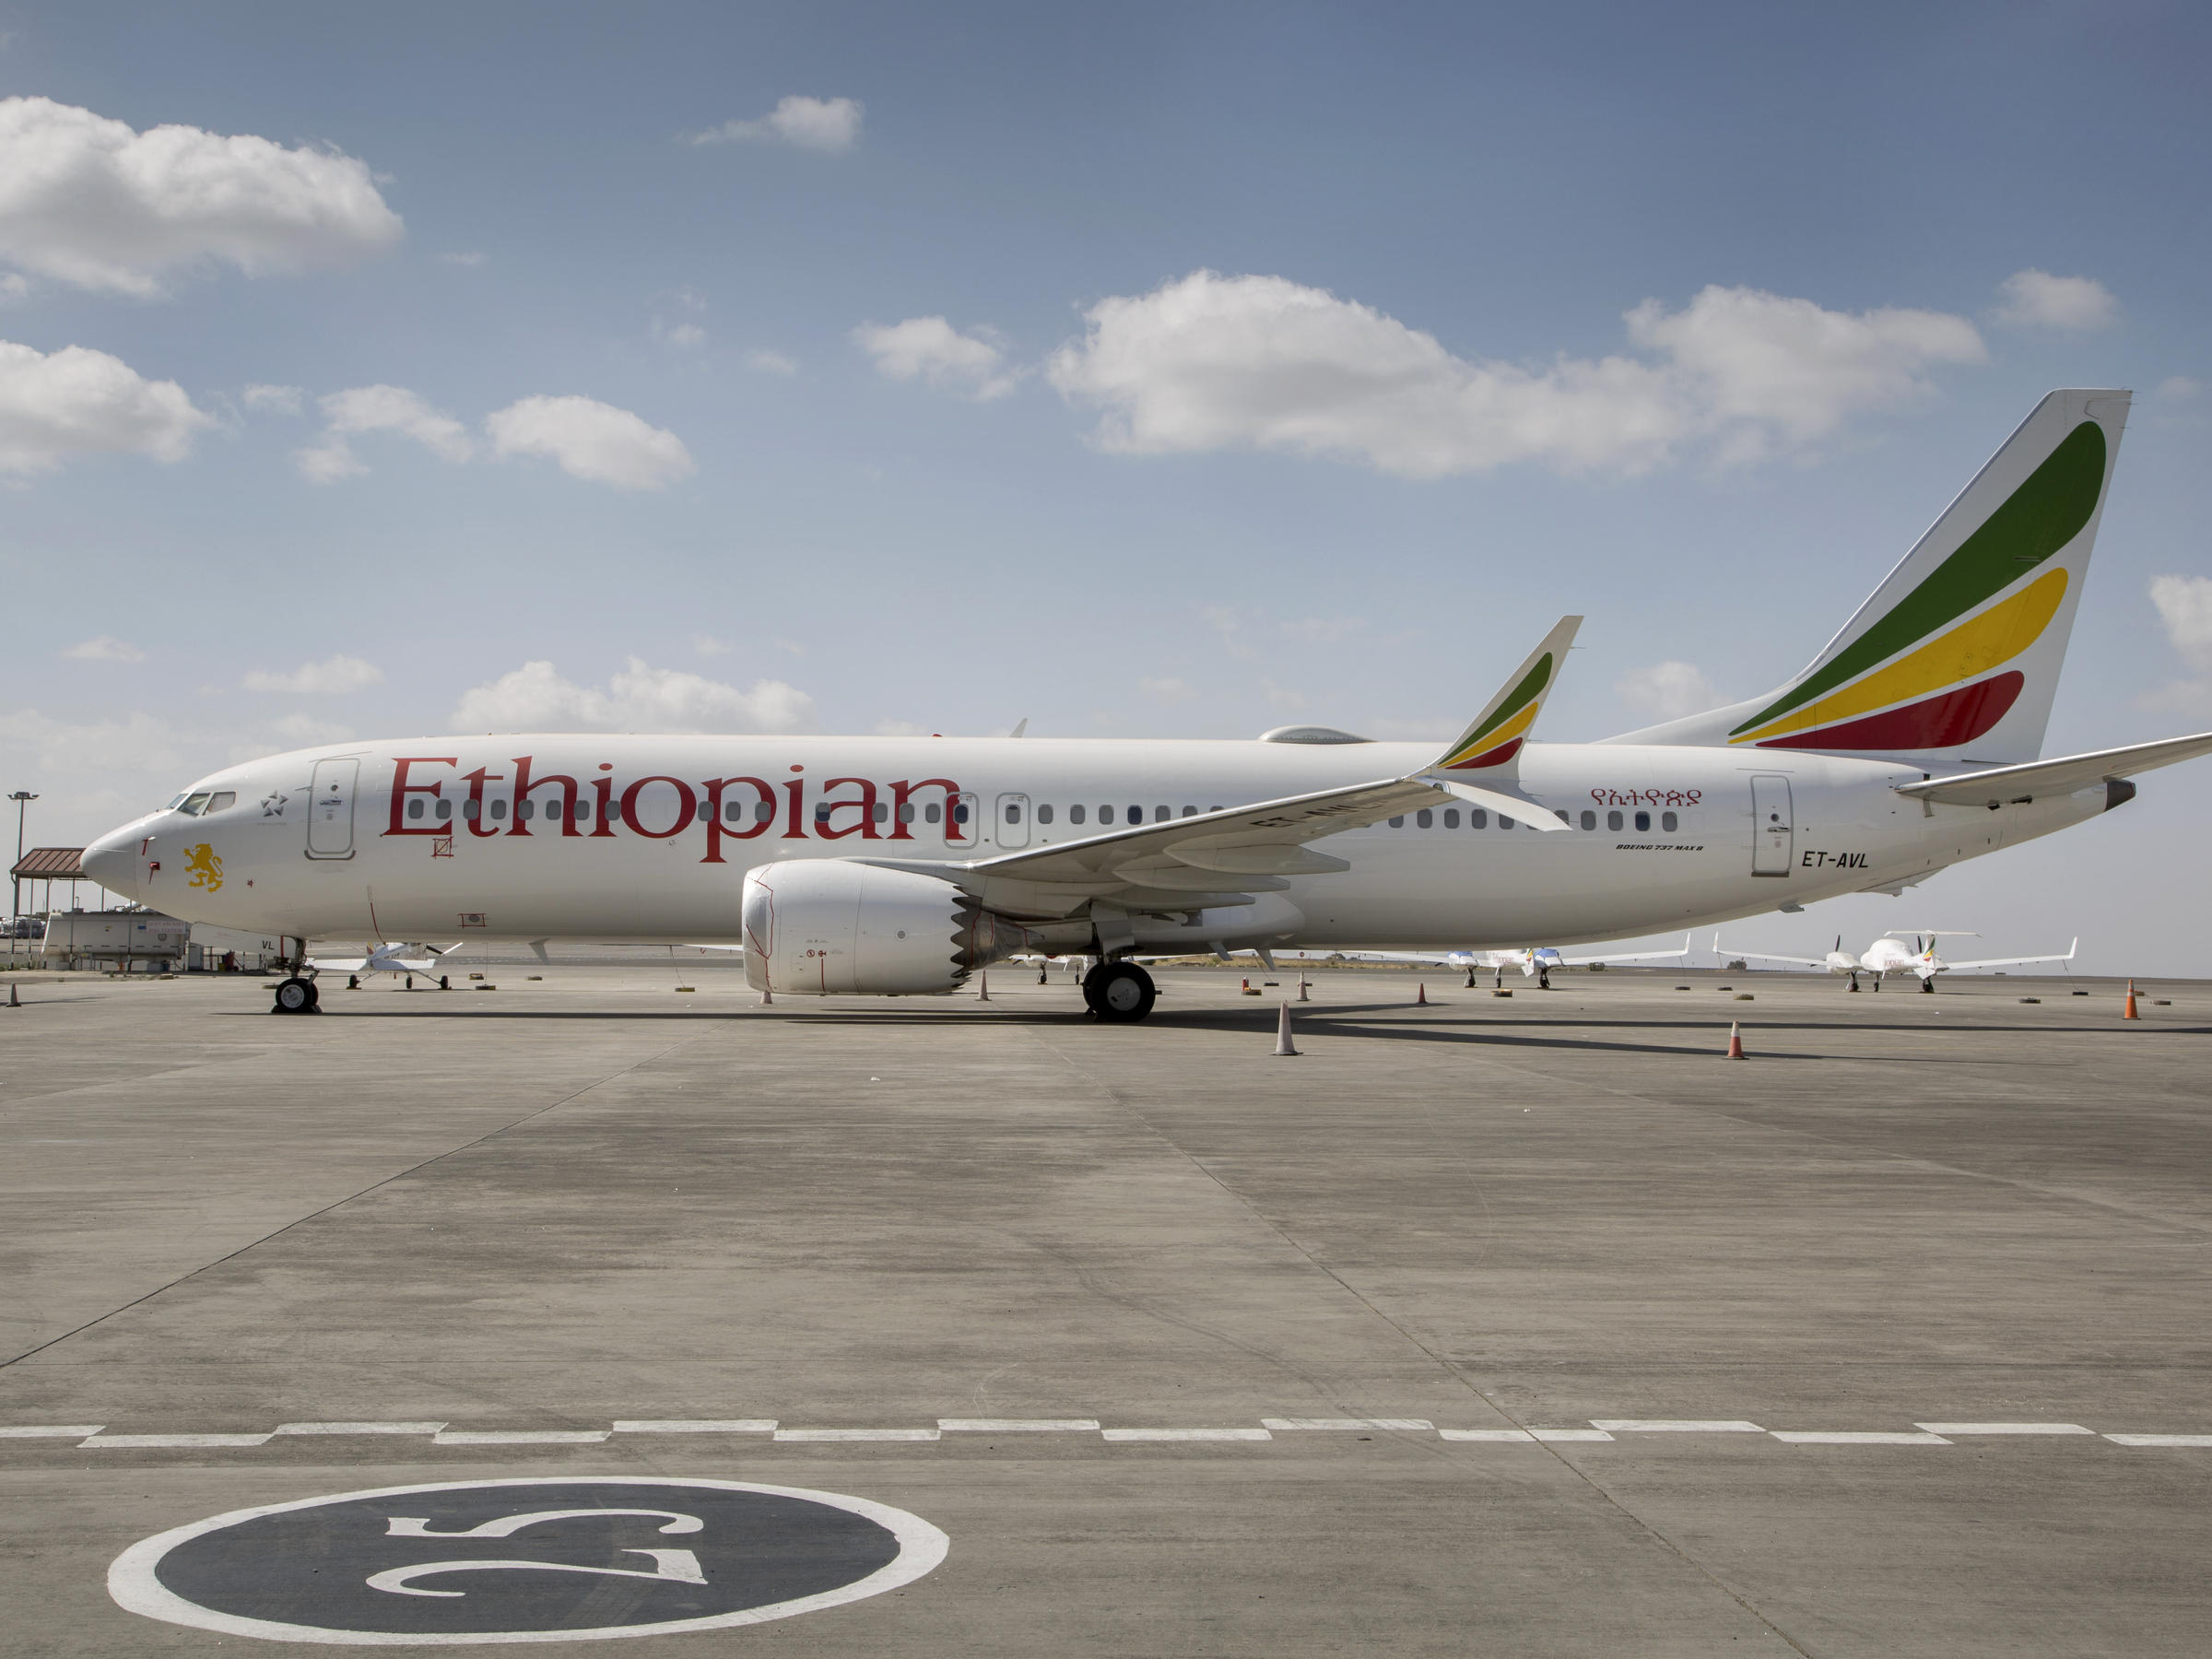 Boeing report: pilots followed guidance but could not control Ethiopian plane